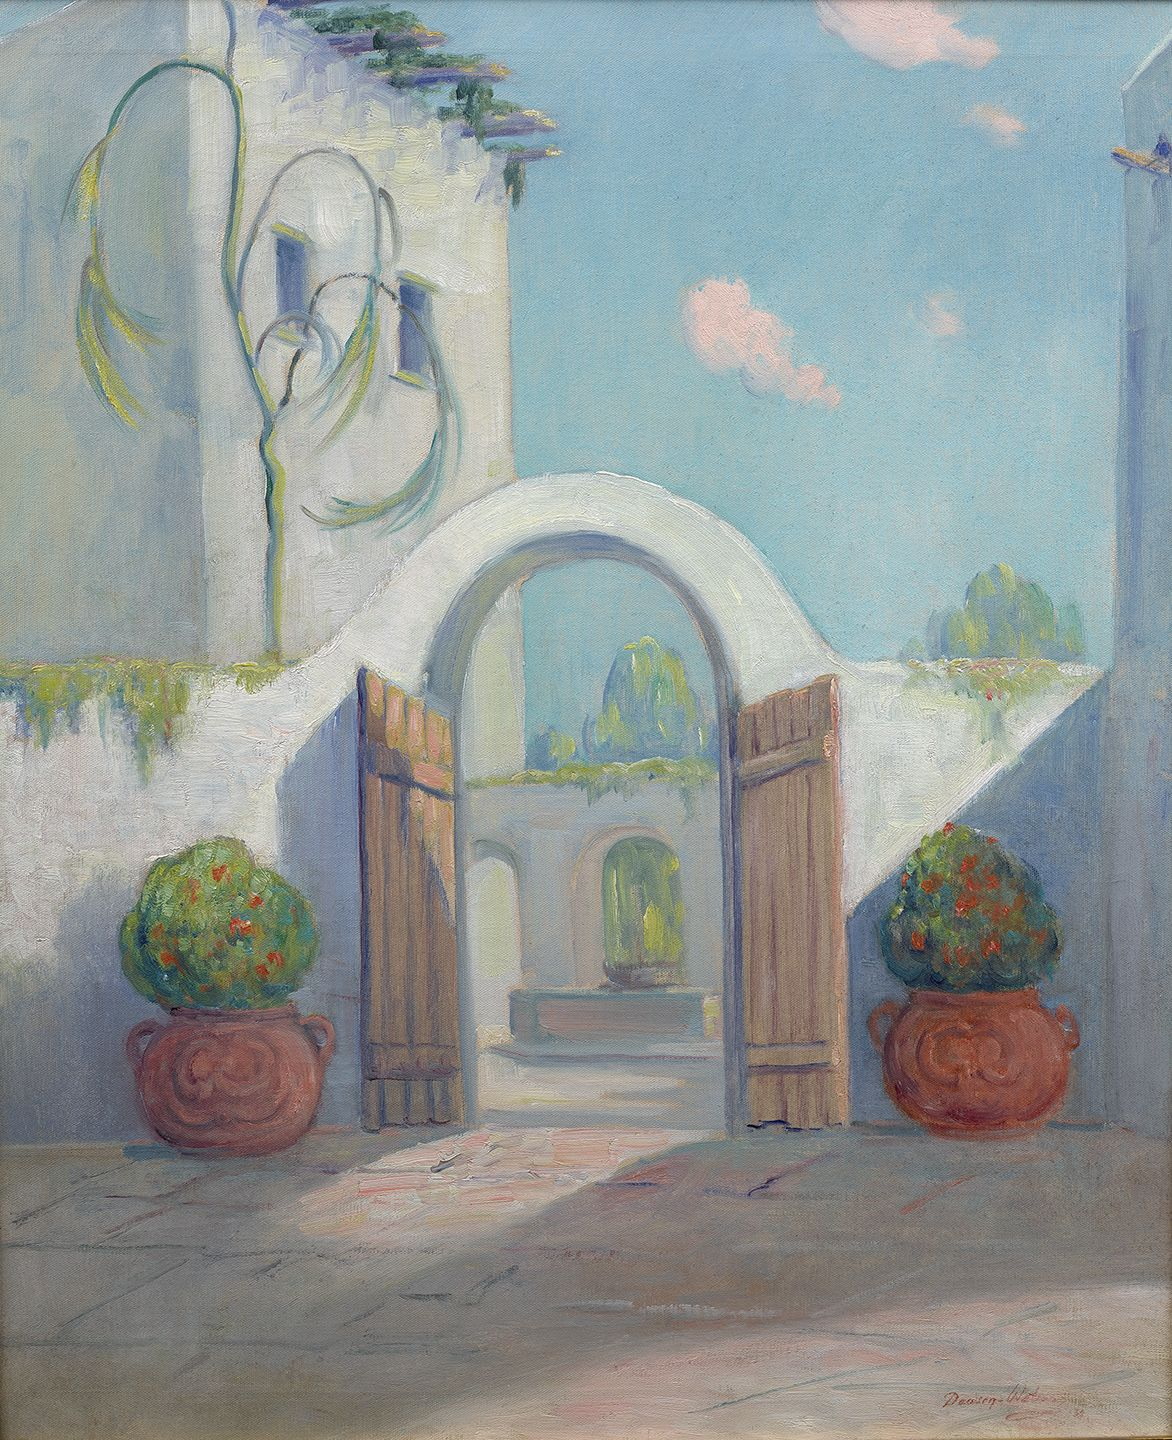 Dawson Dawson-Wastson (1864-1939), Spanish Governor's Palace, San Antonio, Texas, 1937